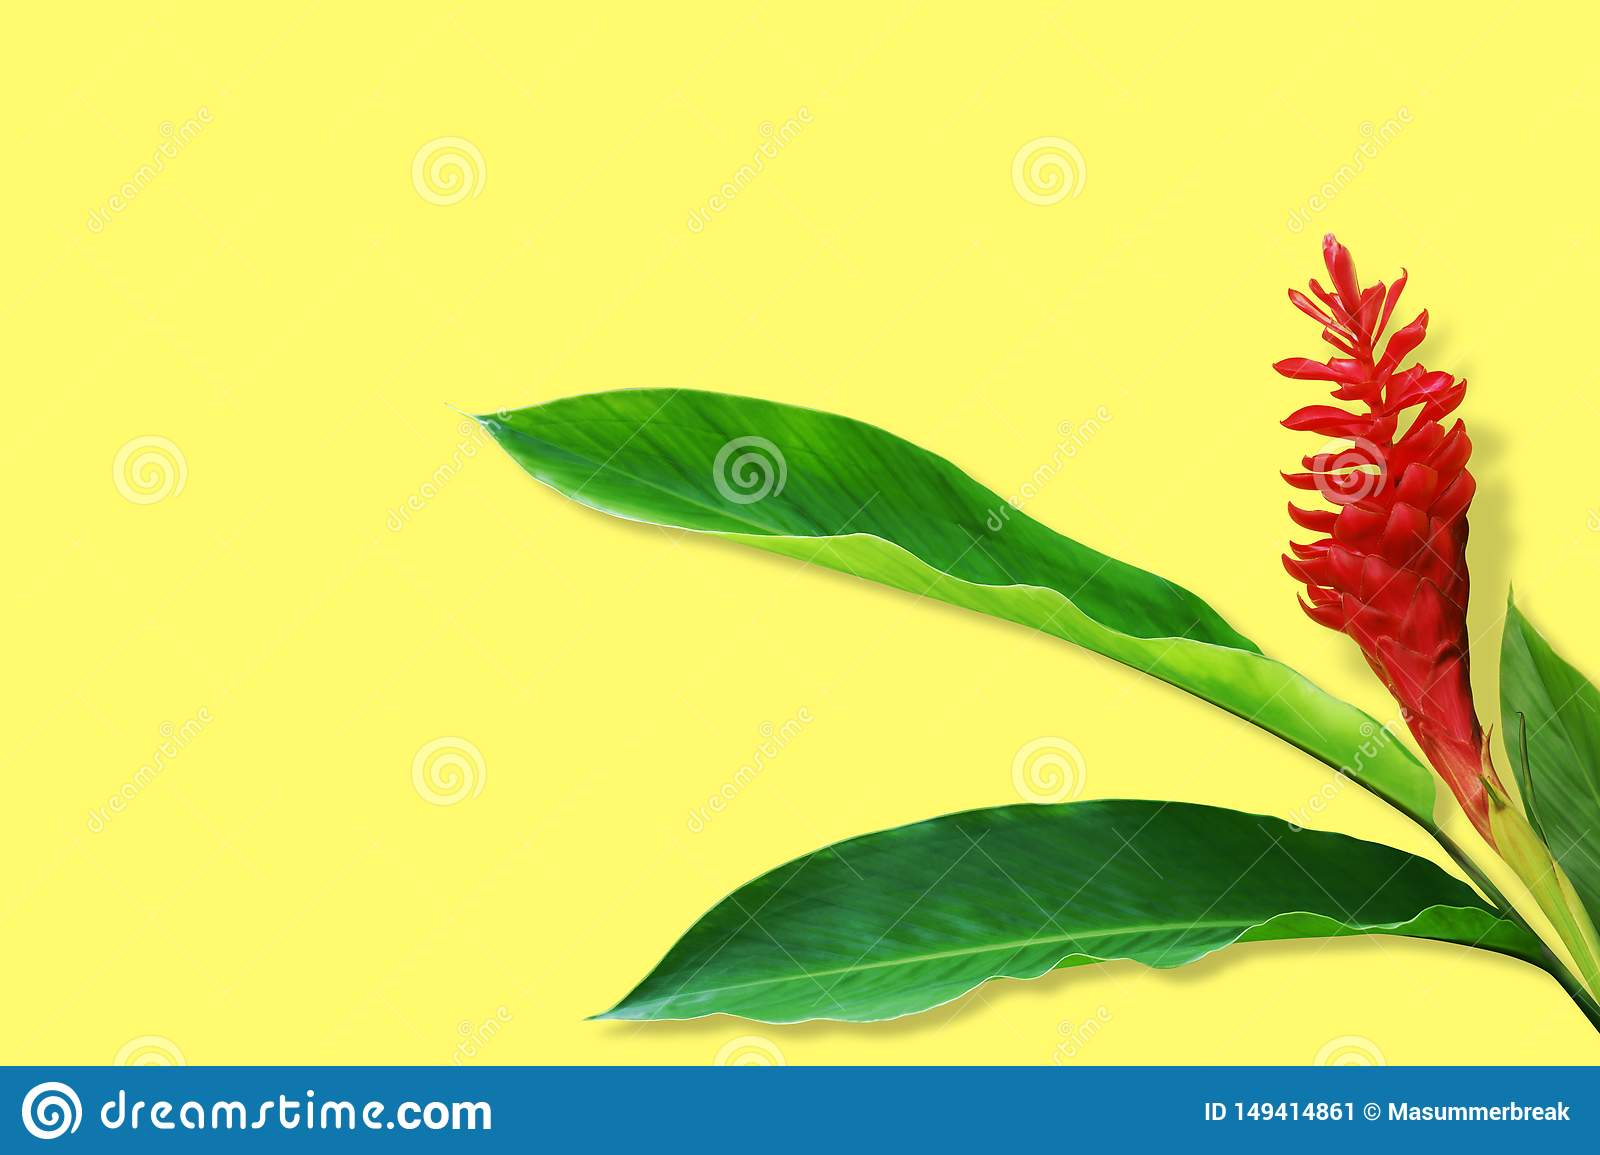 Red Ginger, Alpinia purpurata Flower with Fresh Green Leaves on Yellow Design Background